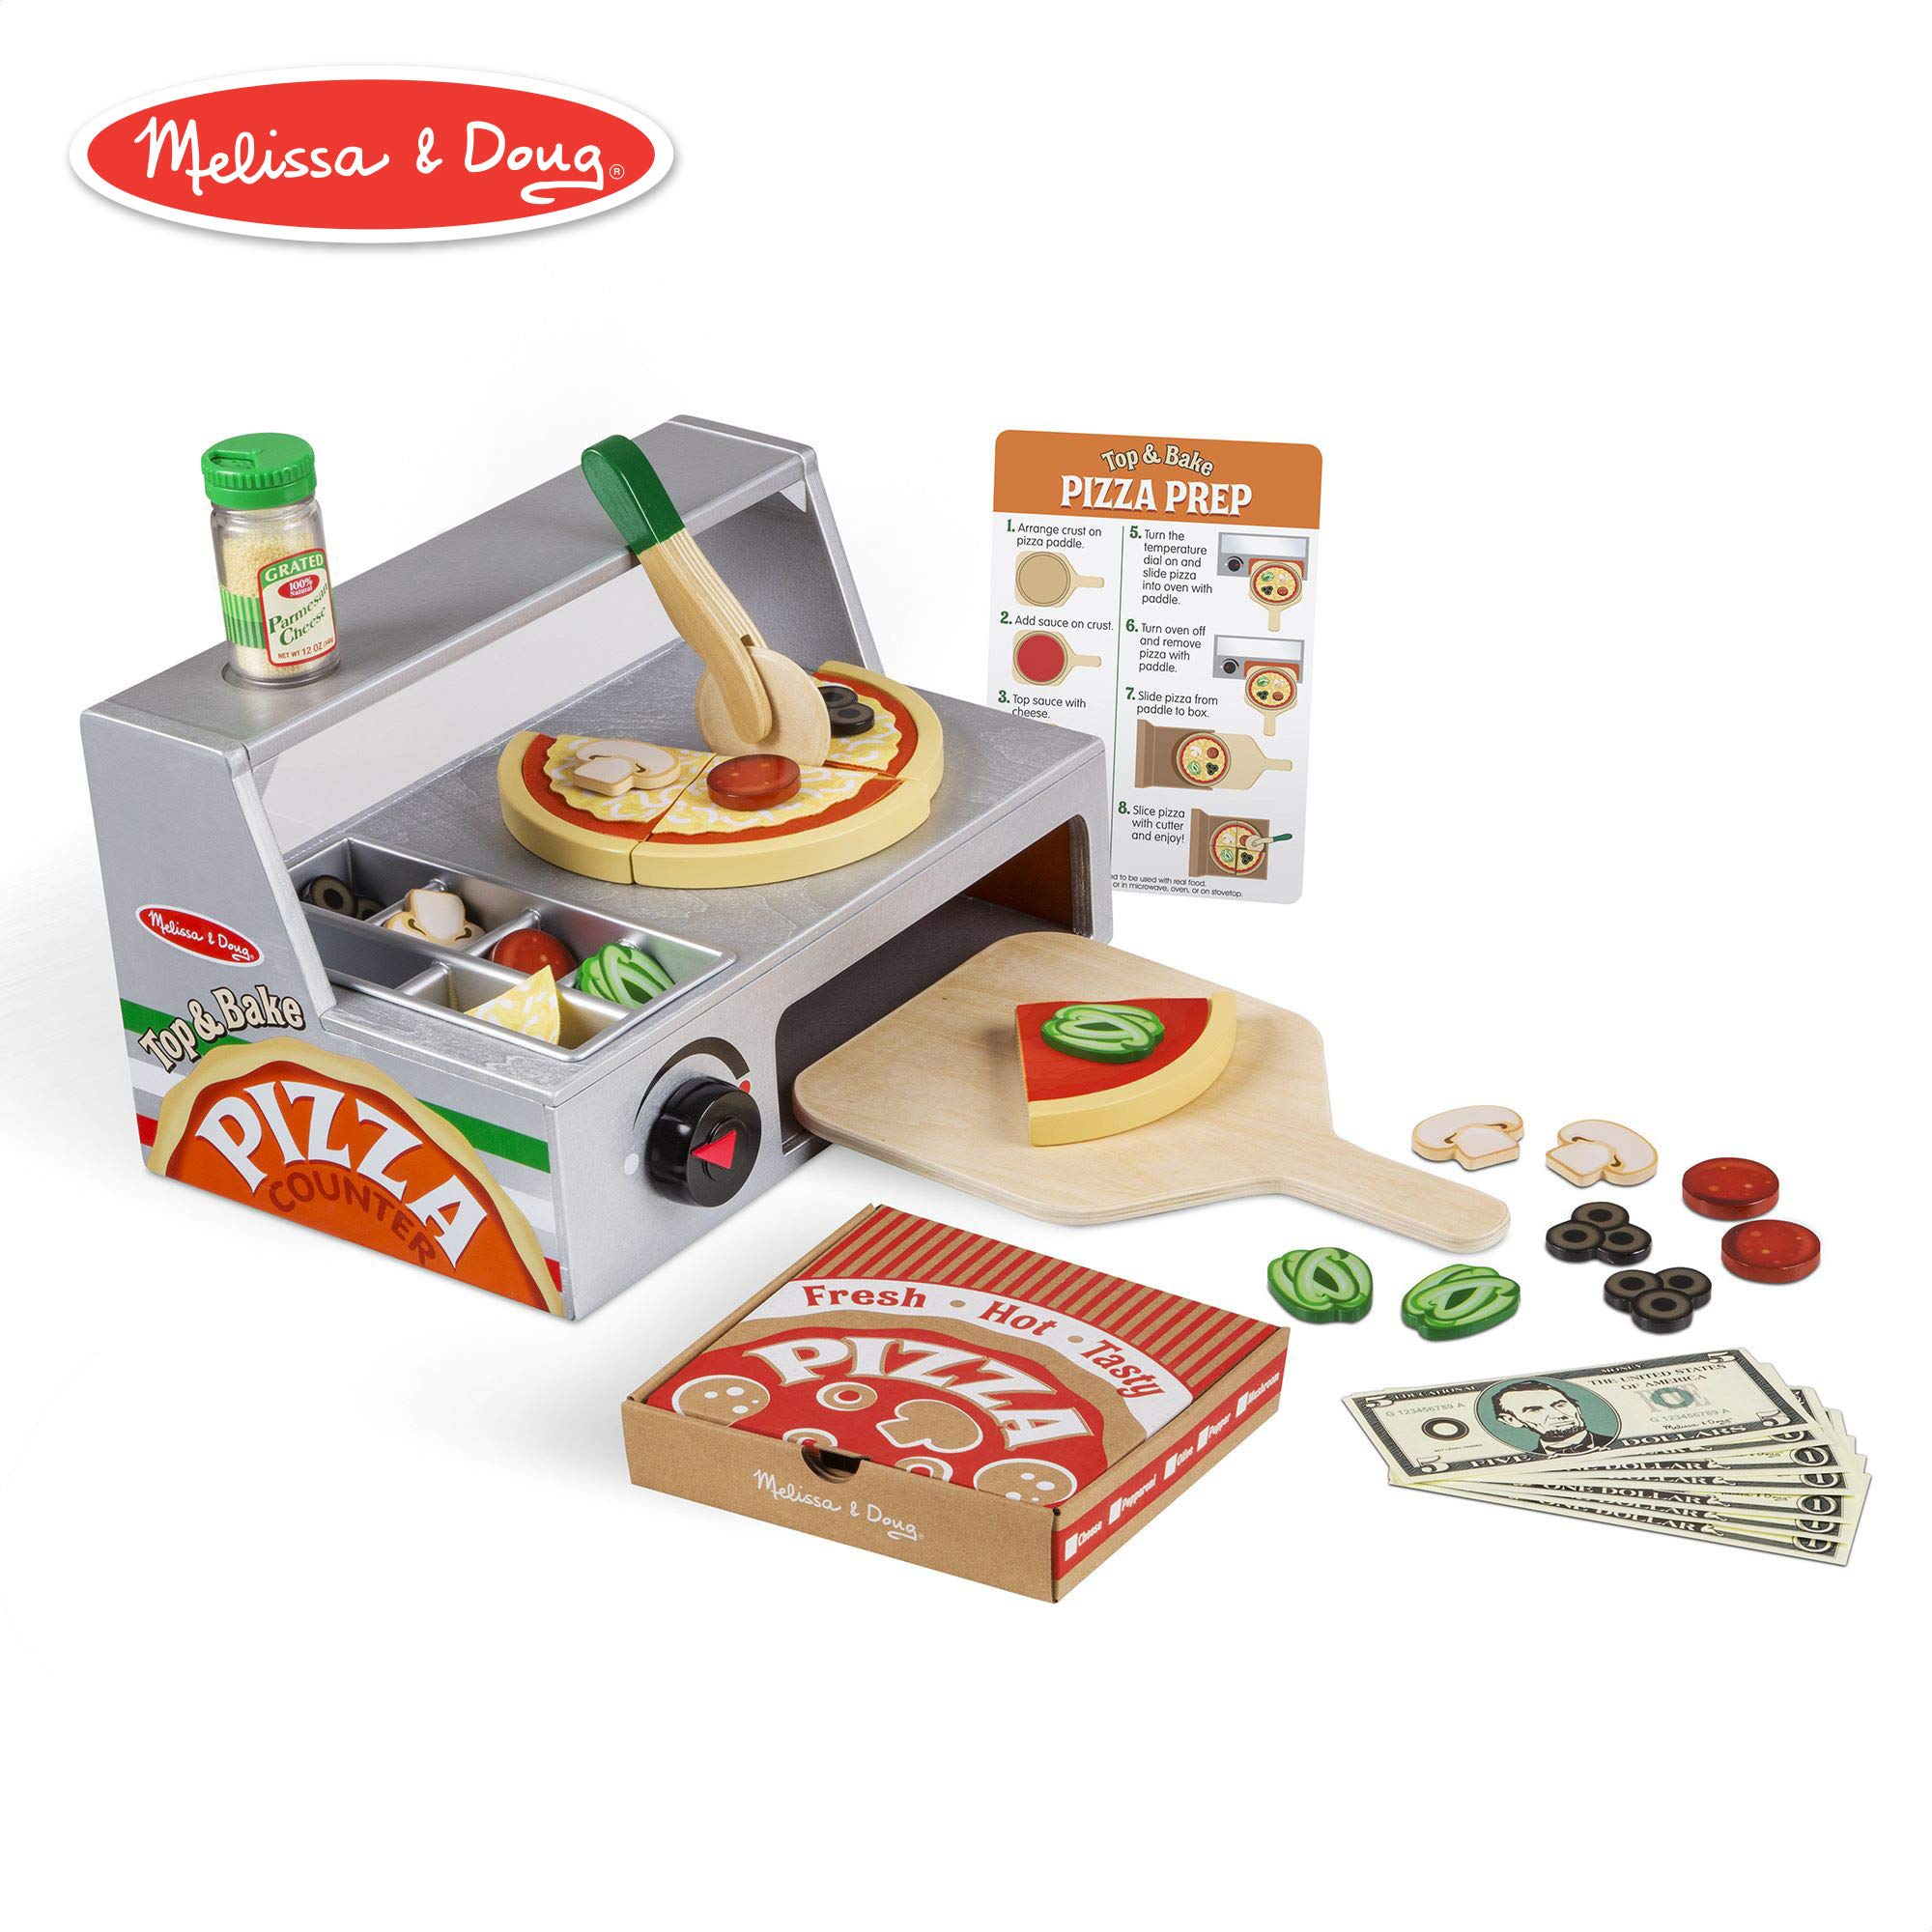 Melissa & Doug Top and Bake Wooden Pizza Counter Play Food Set (Pretend Play, Helps Support Cognitive Development, 34 Pieces, 7.75'' H x 9.25'' W x 13.25'' L) by Melissa & Doug